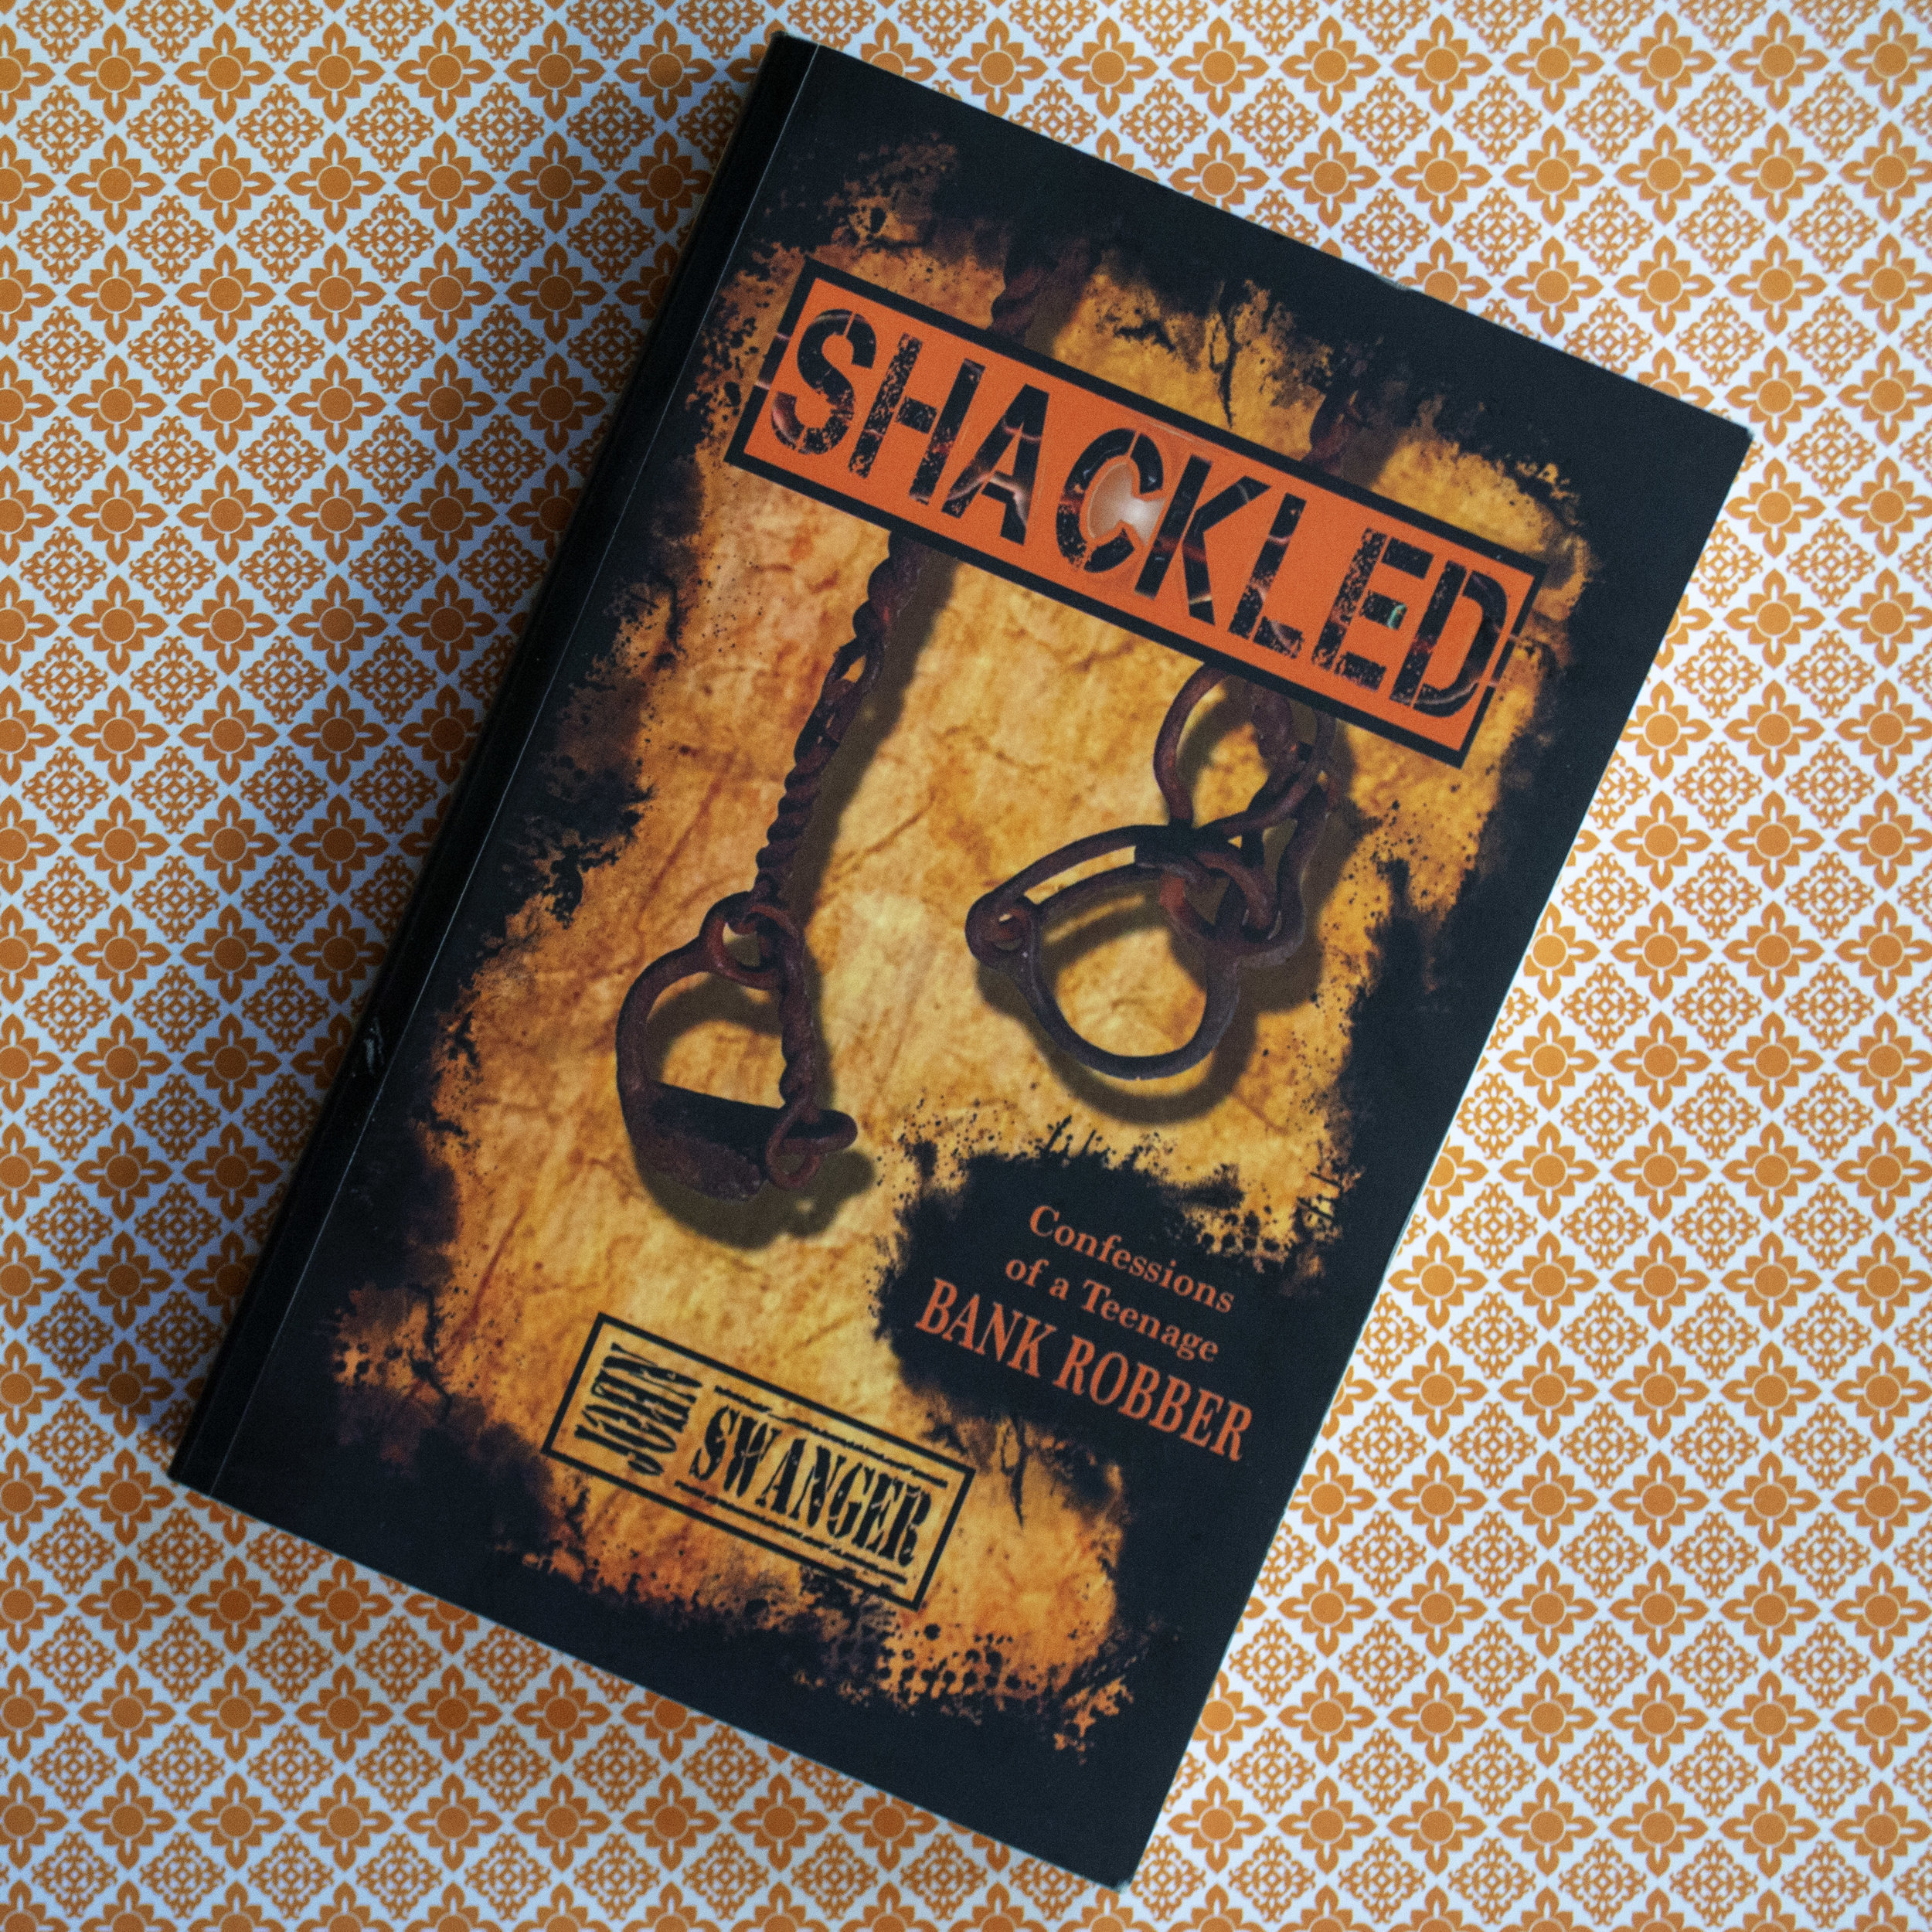 Shackled: Confessions of a Teenage Bank Robber - John Swanger - As a child, poverty and desperation sent John Swanger to live in orphanages and with countless relatives. When he was with his mother, they were constantly on the run, hiding from ex-husbands and irate landlords. At barely sixteen, John was kicked out of his shattered family by stepfather number three, onto the street where survival meant hustling pool and selling drugs. Bad choices bring consequences and by the age of 18, it was time to pay up.John Swanger tells the riveting story of his years as a teenage boy, eager for the loving father he never had. When he finally finds him, however, the older man turns out to be a bank robber, so John becomes one too. A gripping and dramatic tale of the life of teenage bank robber … and how God miraculously saved him.Also check out John's sequel, also produced by Inspira, Unshackled: A Story of Redemption.Learn more on John's website: www.johnswanger.org